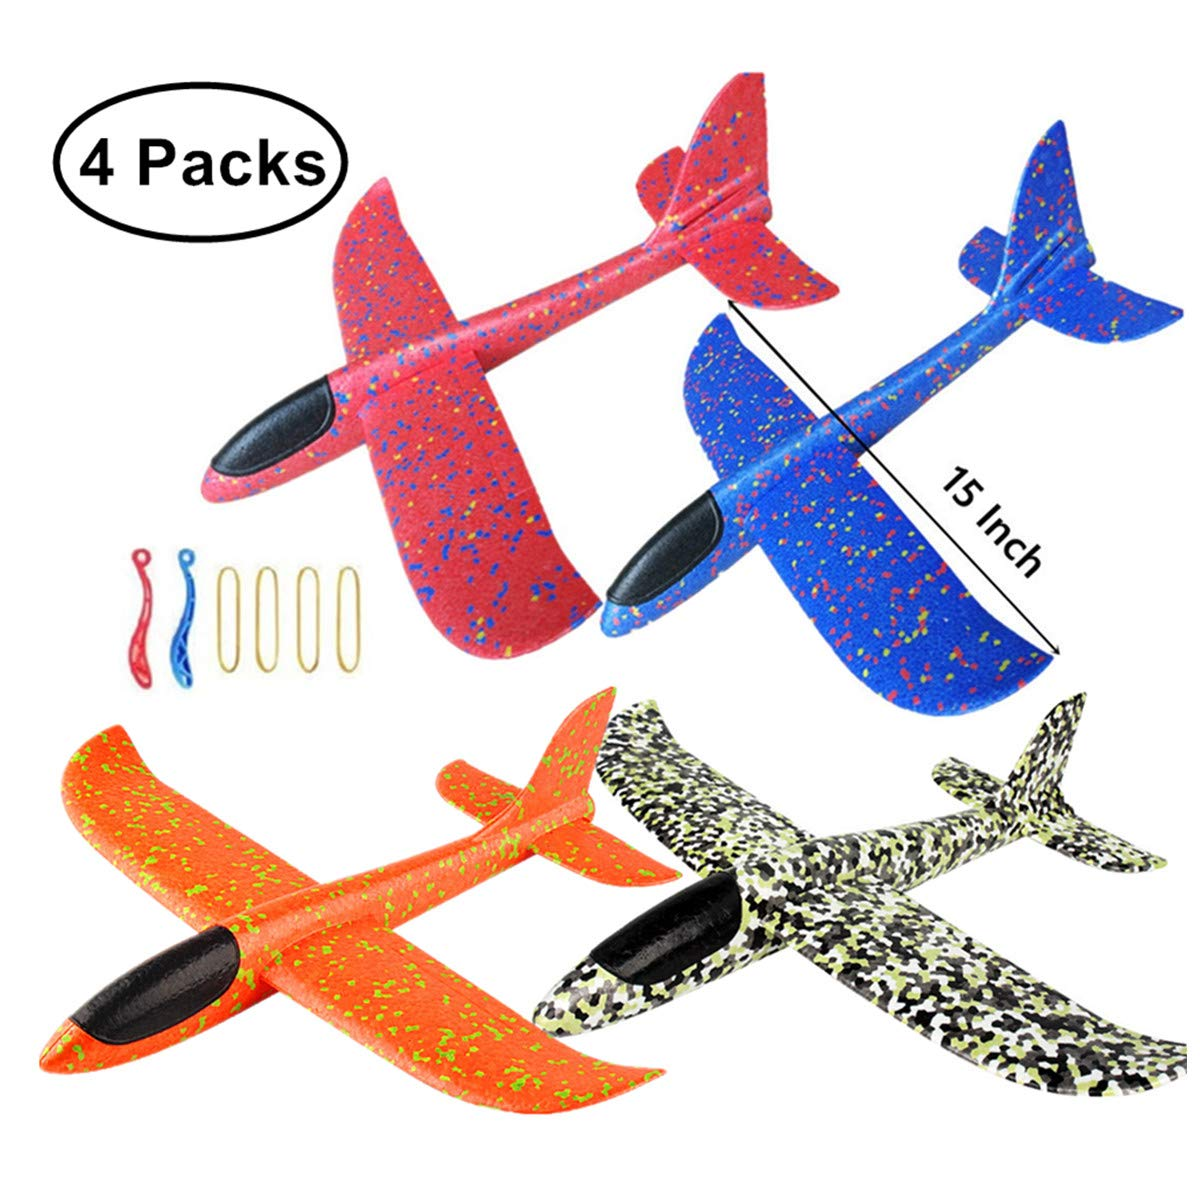 KINGSOO Glider Plane for Kids, 4 Pack 15 inch Glider Airplanes Foam Flying Airplane Kit for Outdoor Sports Garden Yard Playing-Orange+Blue+red+comflag